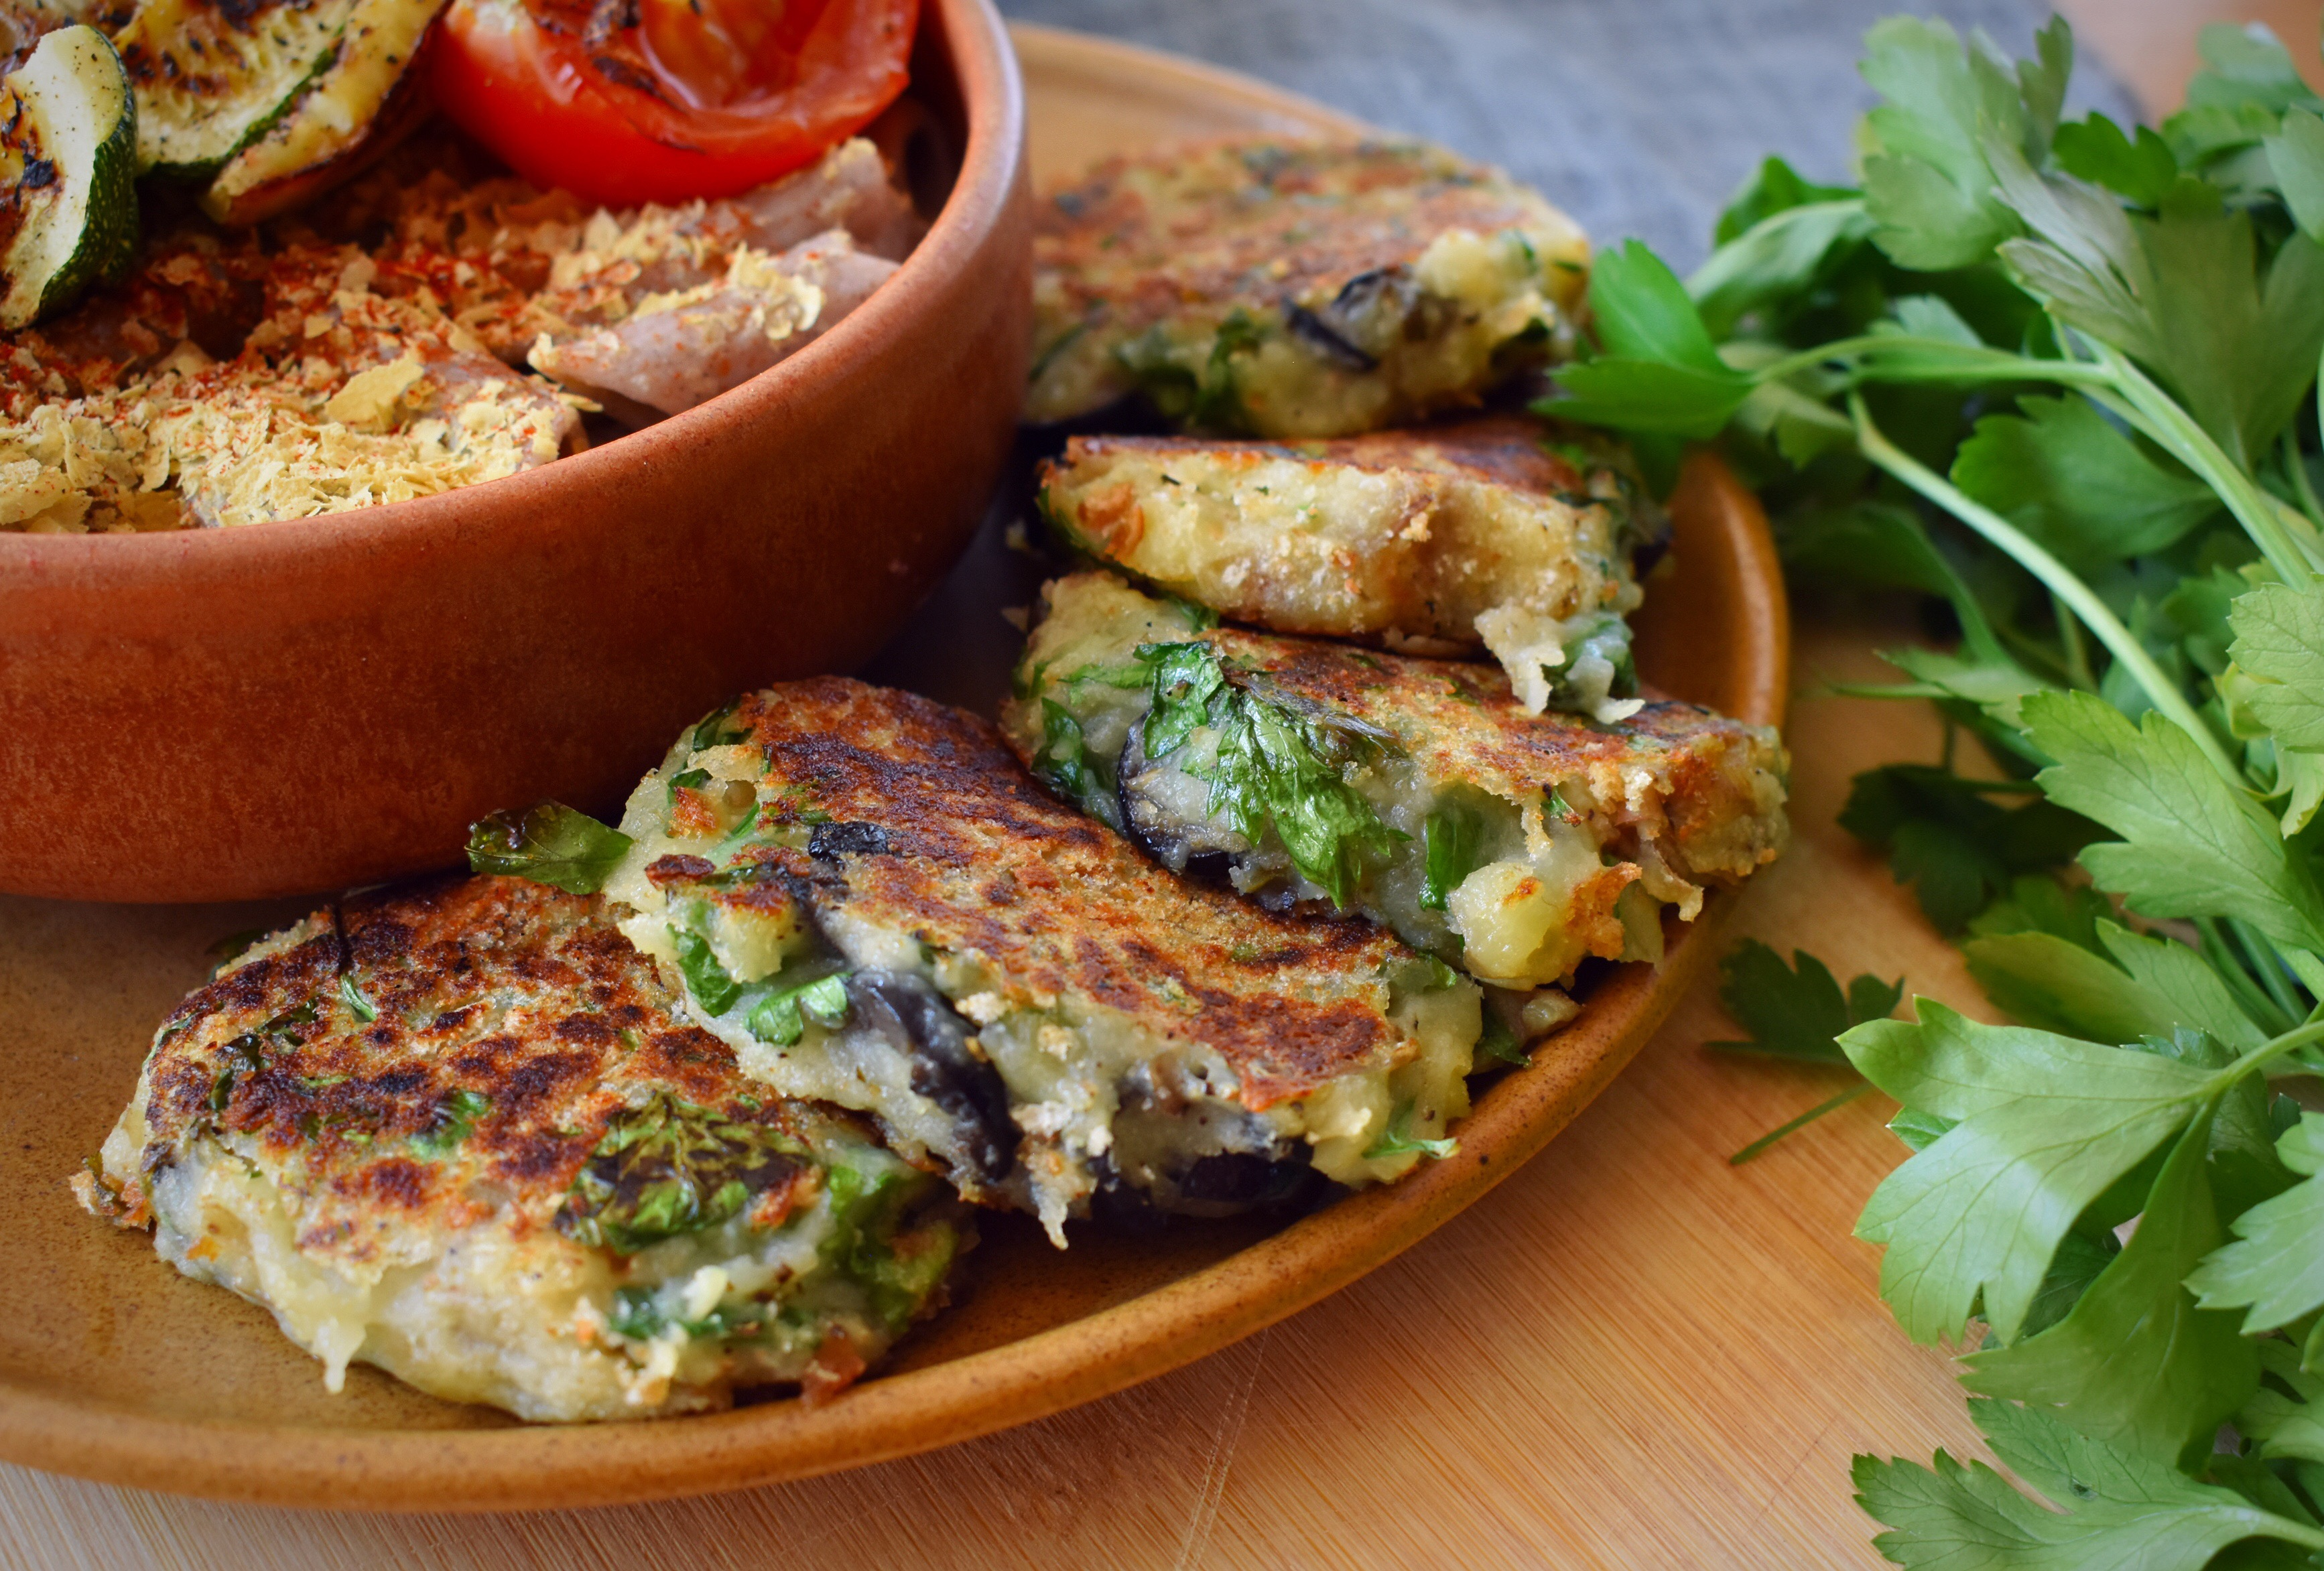 Potato Cakes With Olives & Parsley